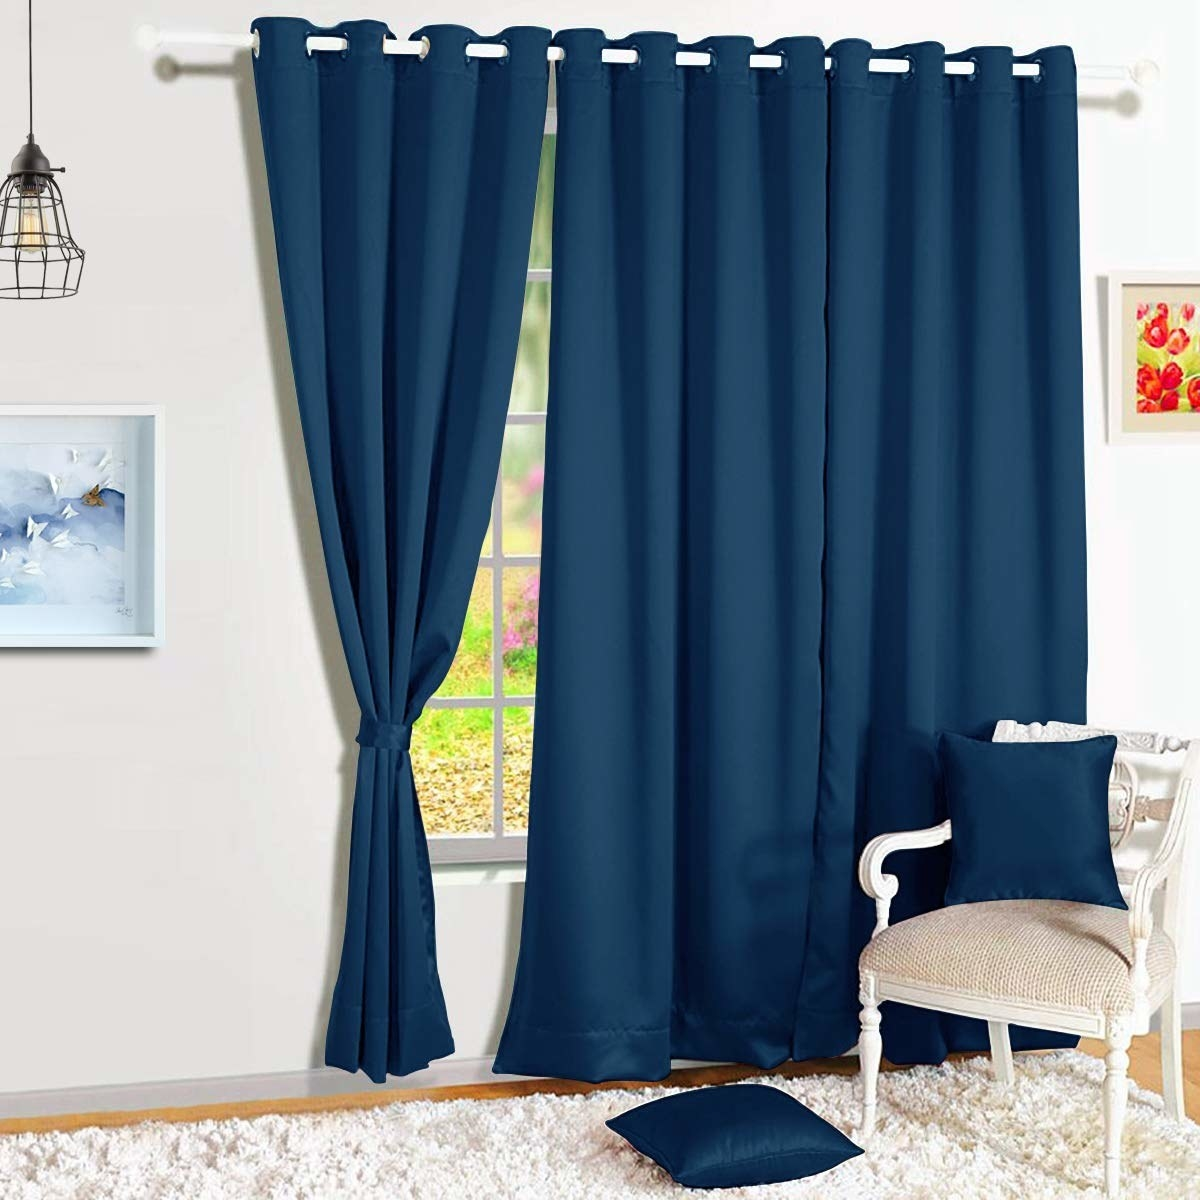 Blue full length blackout curtains in front of a window in a bedroom